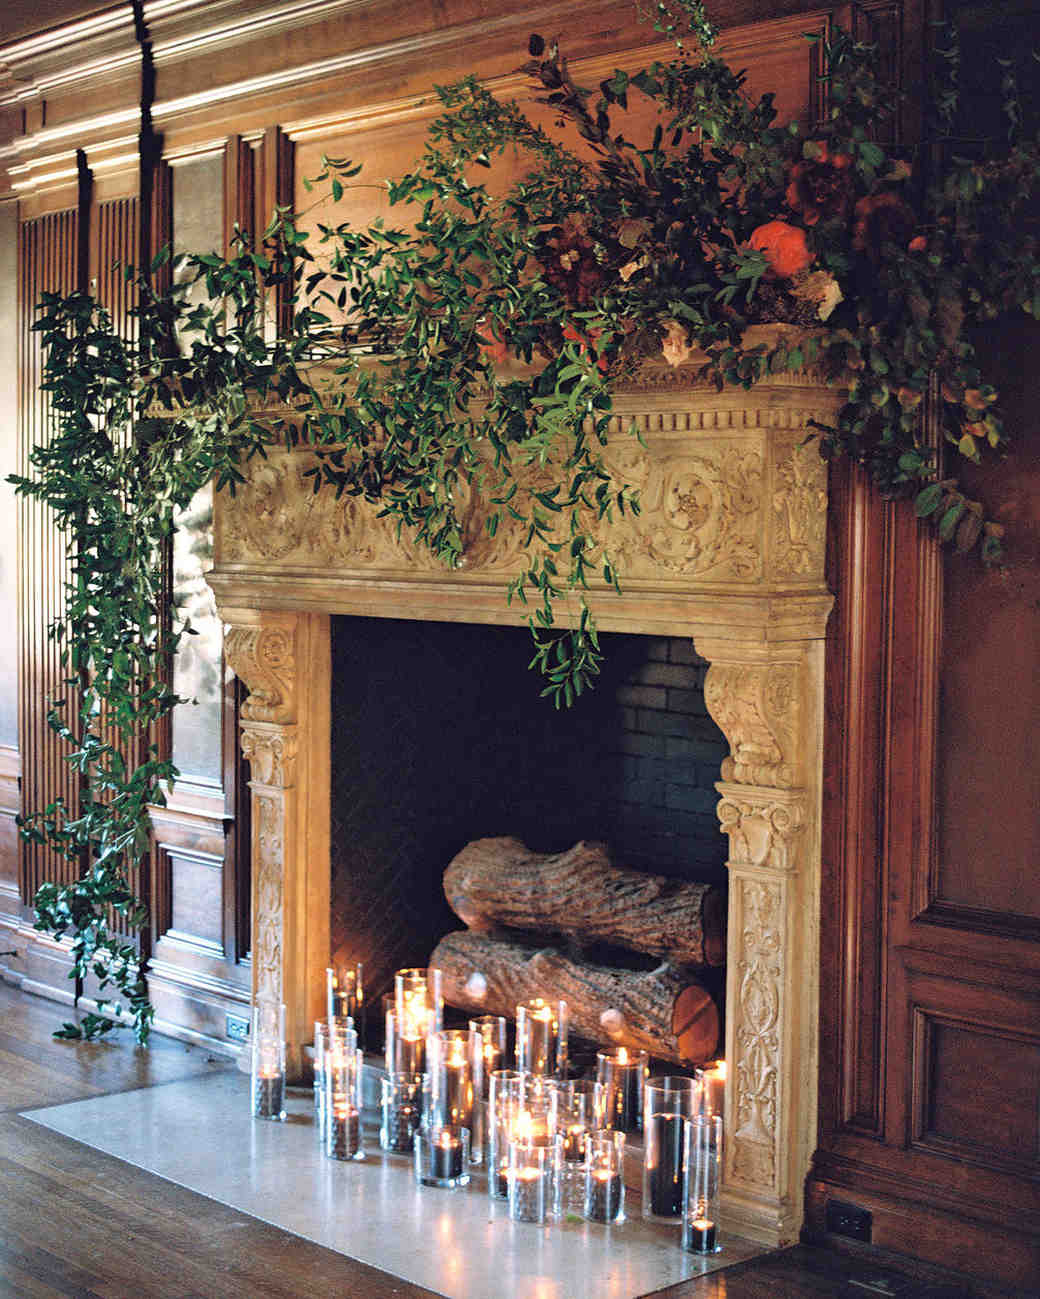 yolanda cedric wedding fireplace